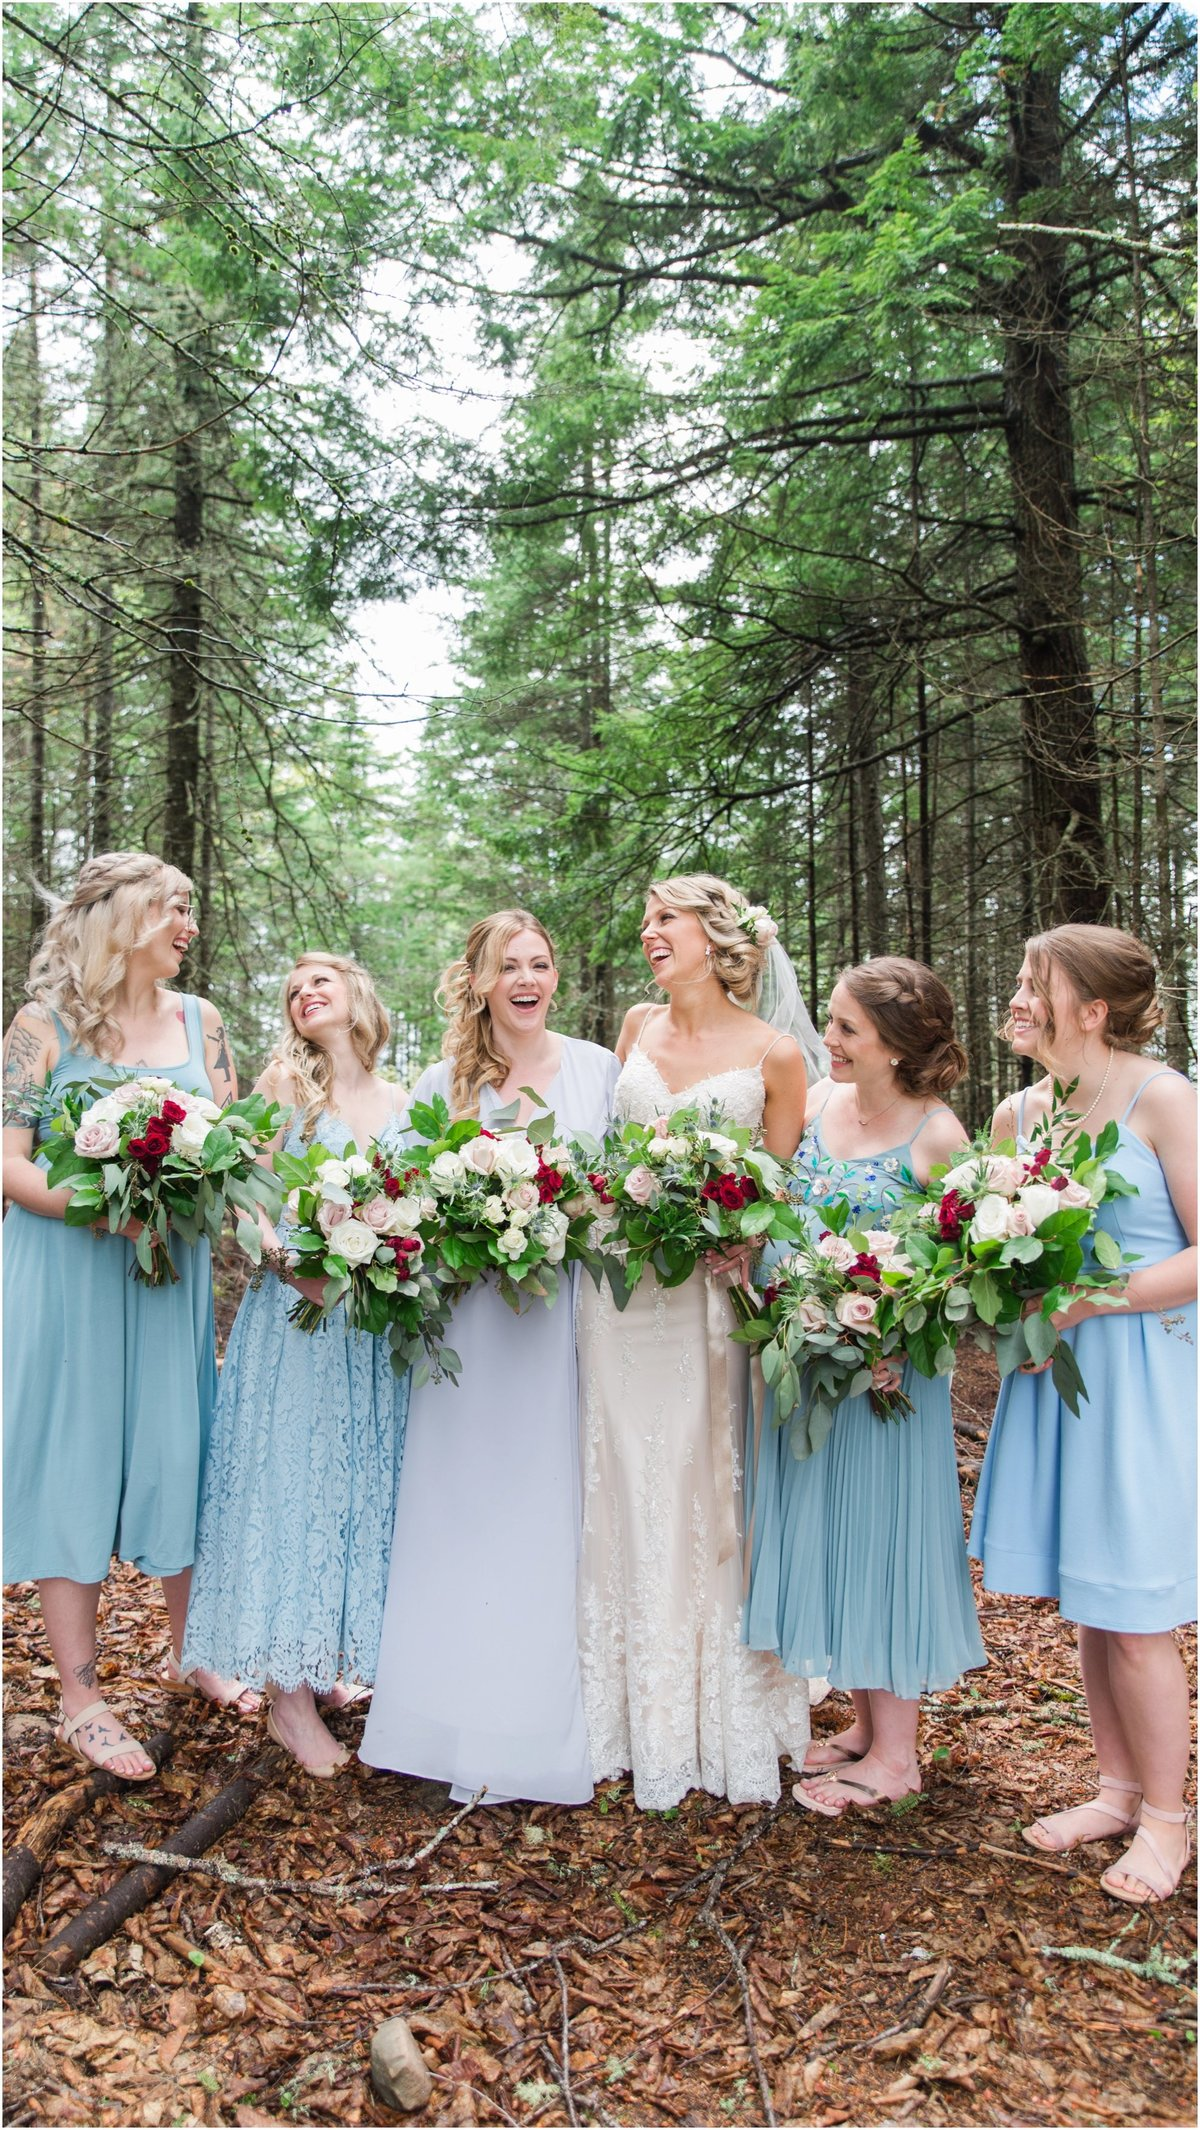 Bride with bridesmaids laughing, mix and matched blue bridesmaid dresses